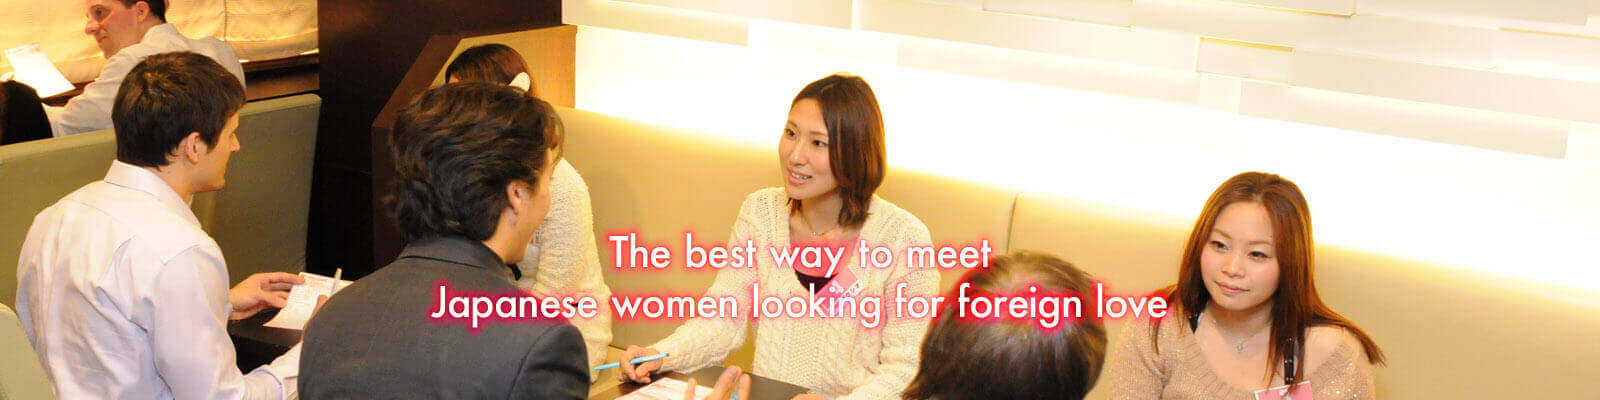 Internationale speed dating Tokyo